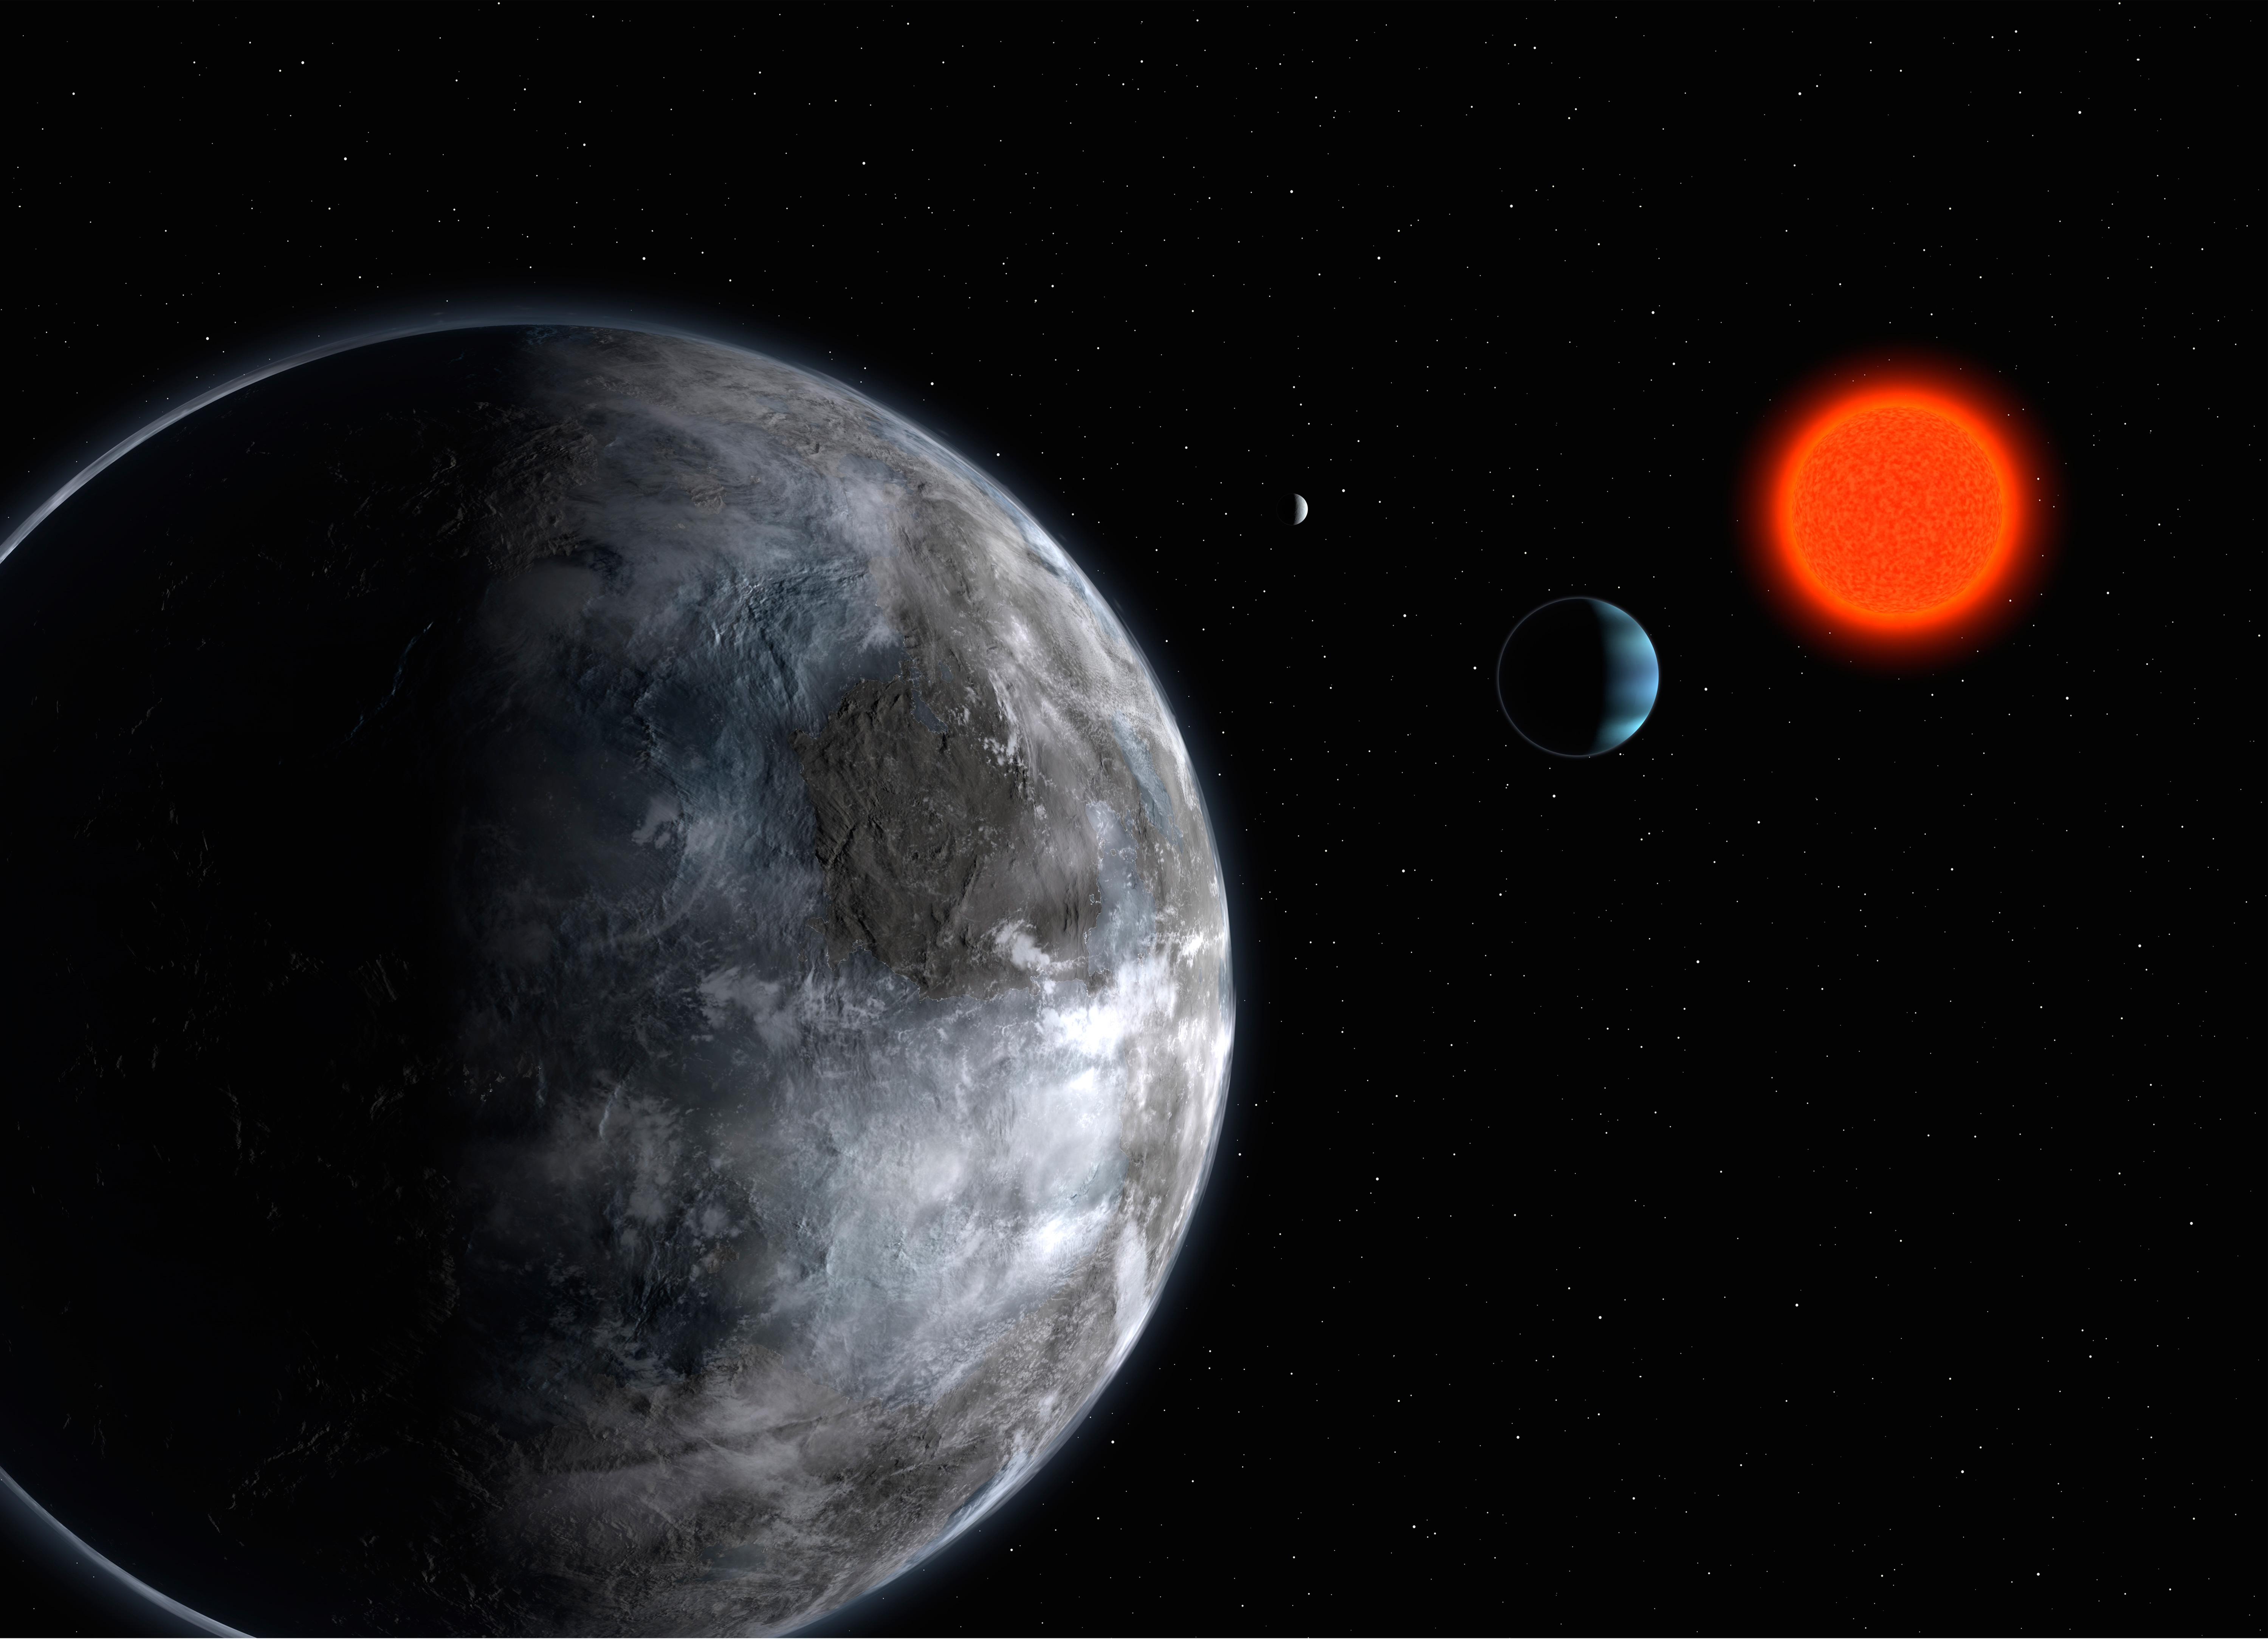 New Planet Gliese 581 - Pics about space